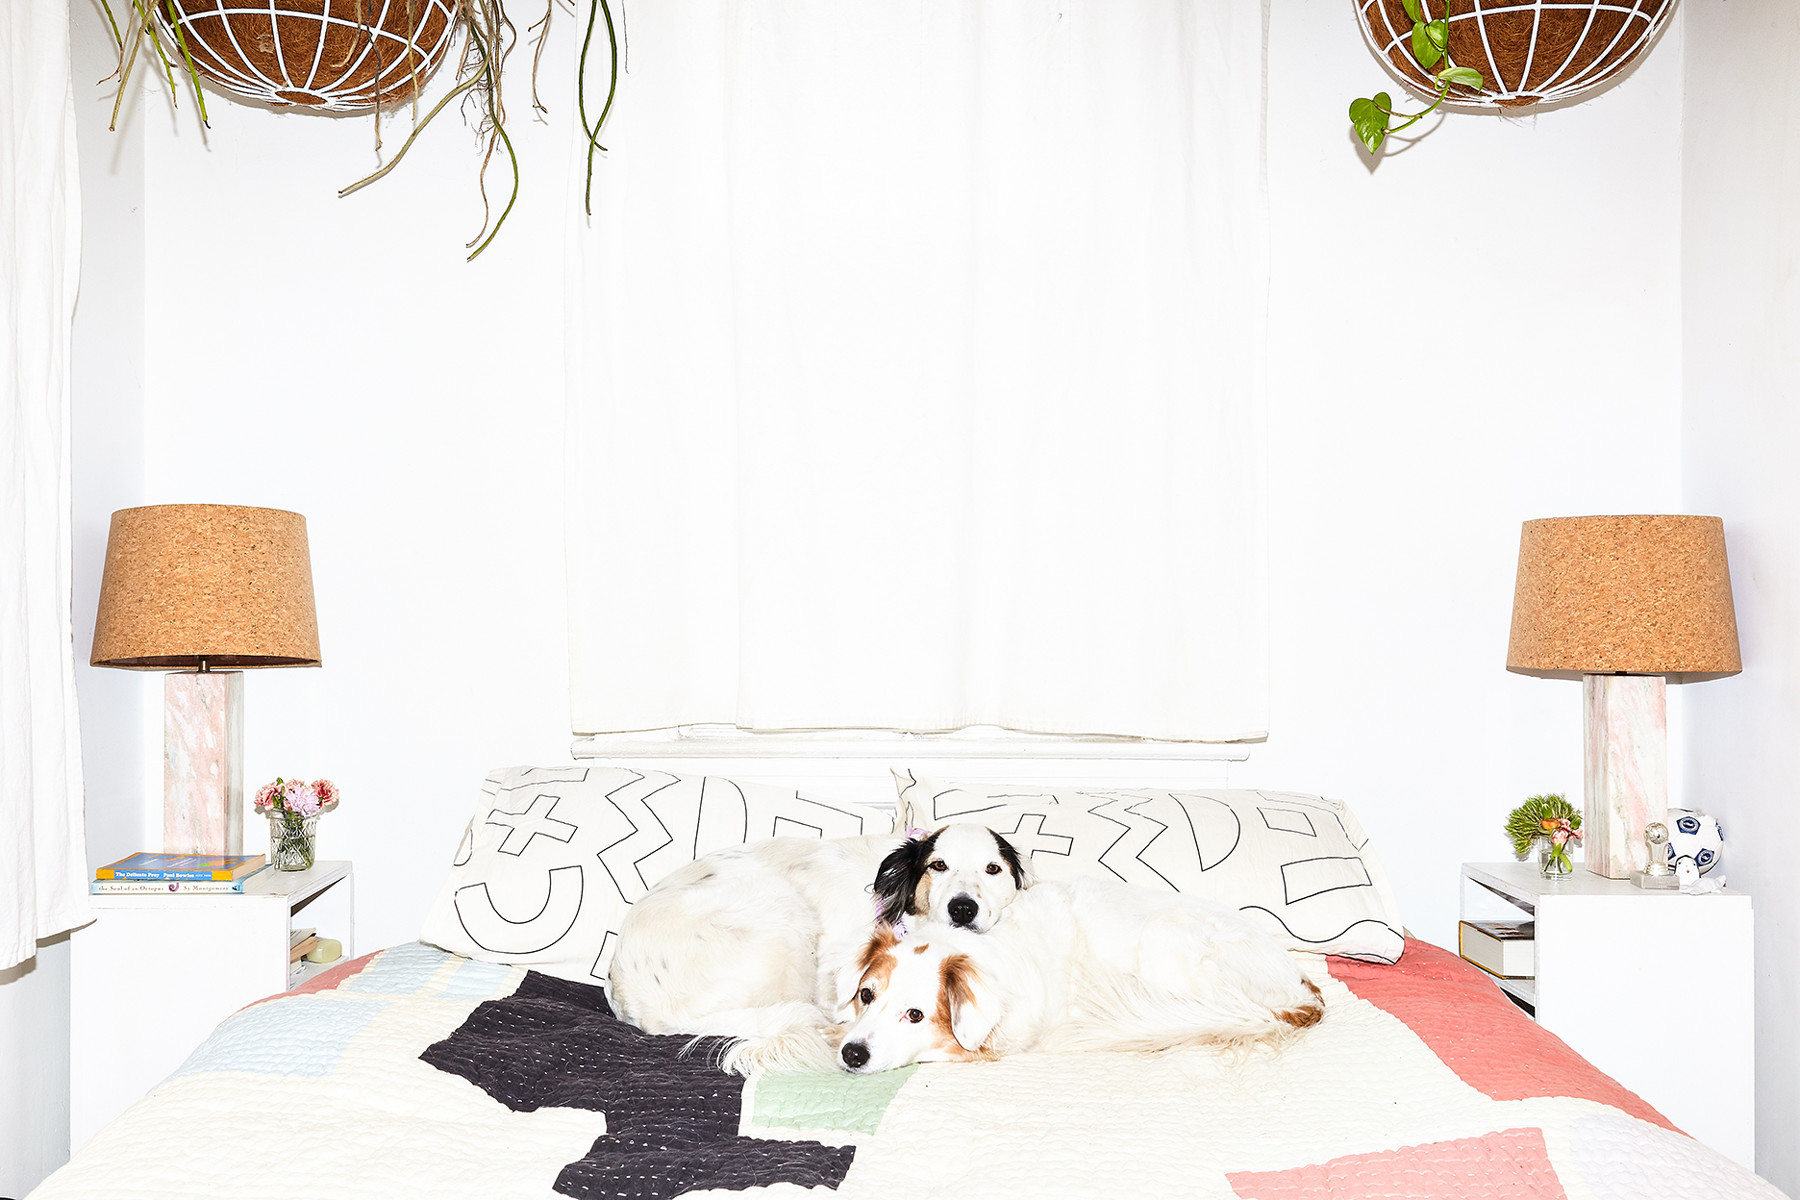 The couple's pups rest on a bed decorated with Dusen Dusen sheets and pillows, and a Cold Picnic quilt.